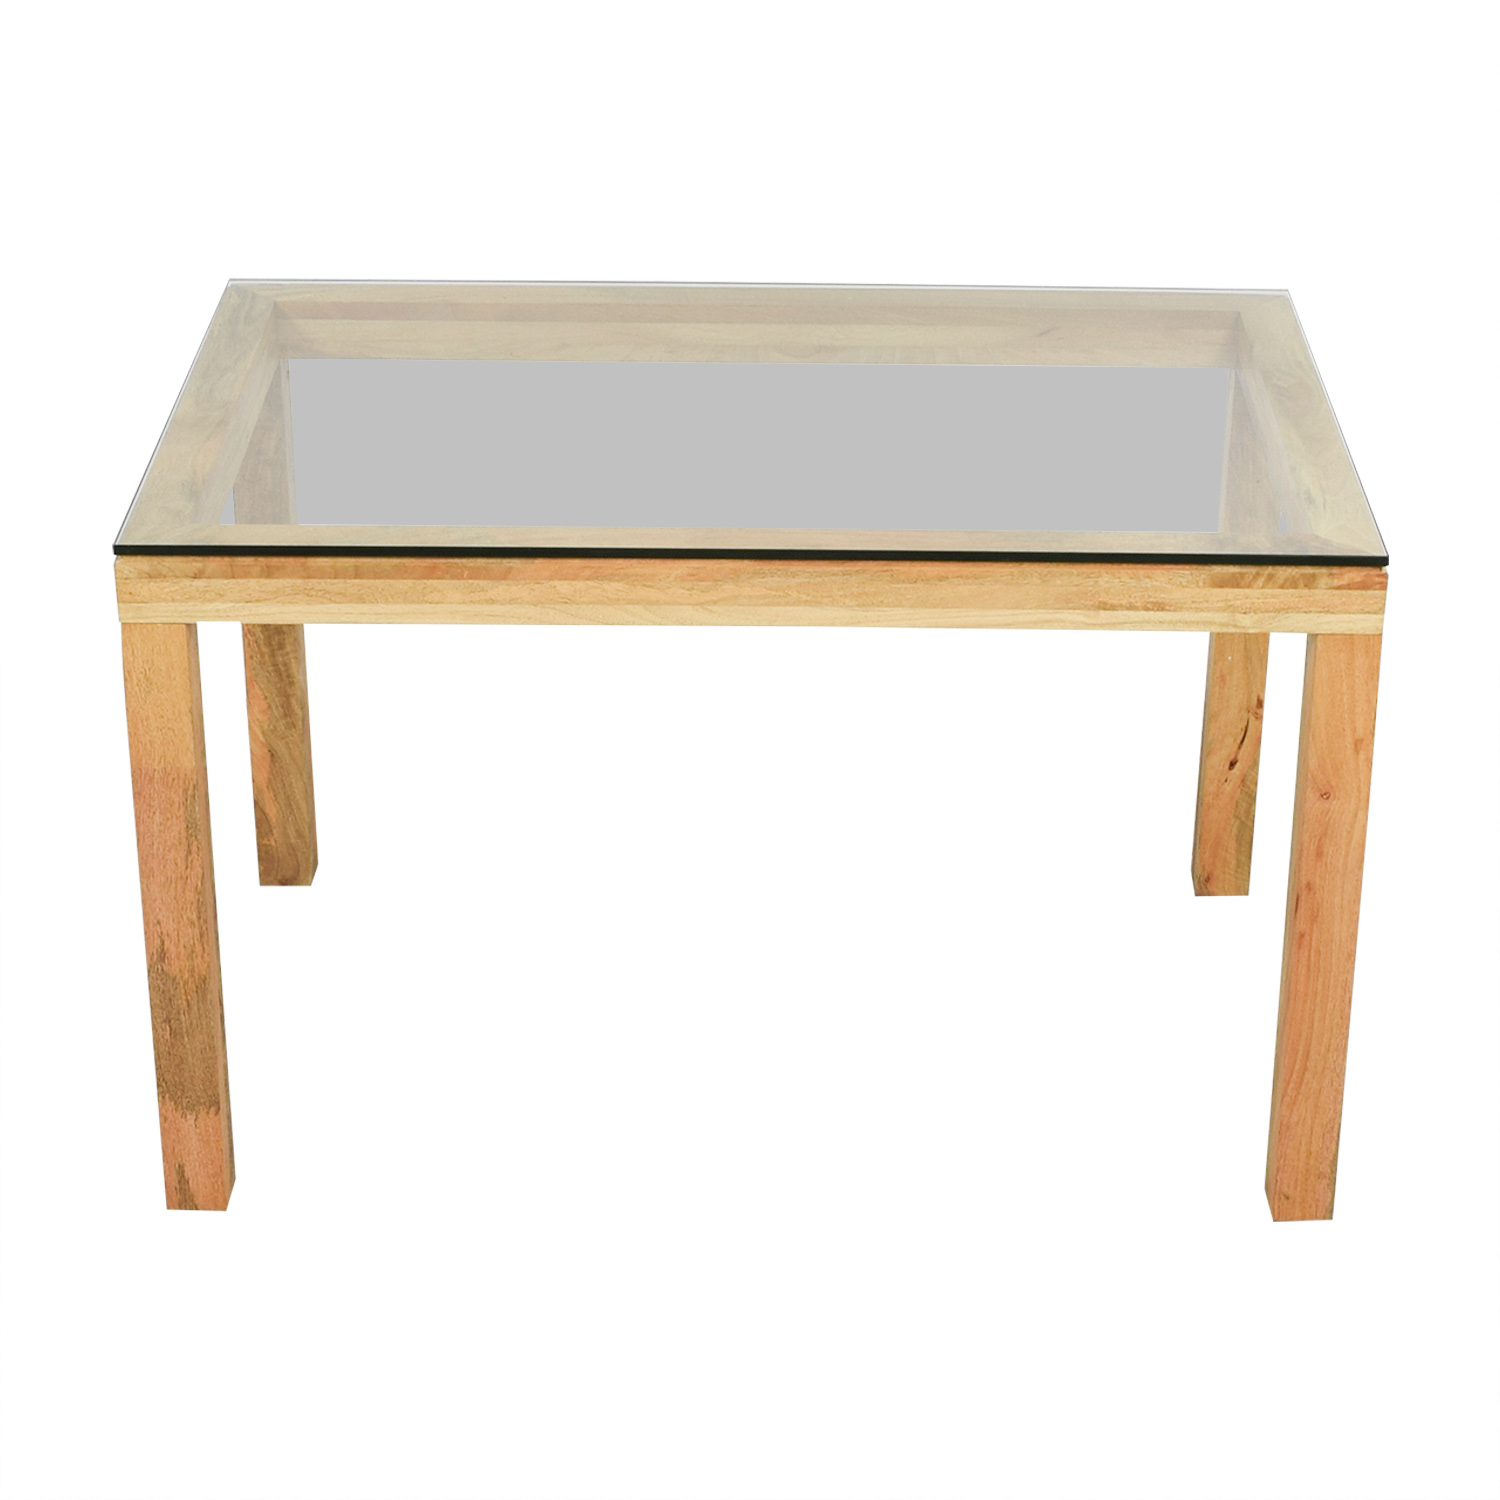 West Elm West Elm Wood and Glass Dining Table nyc